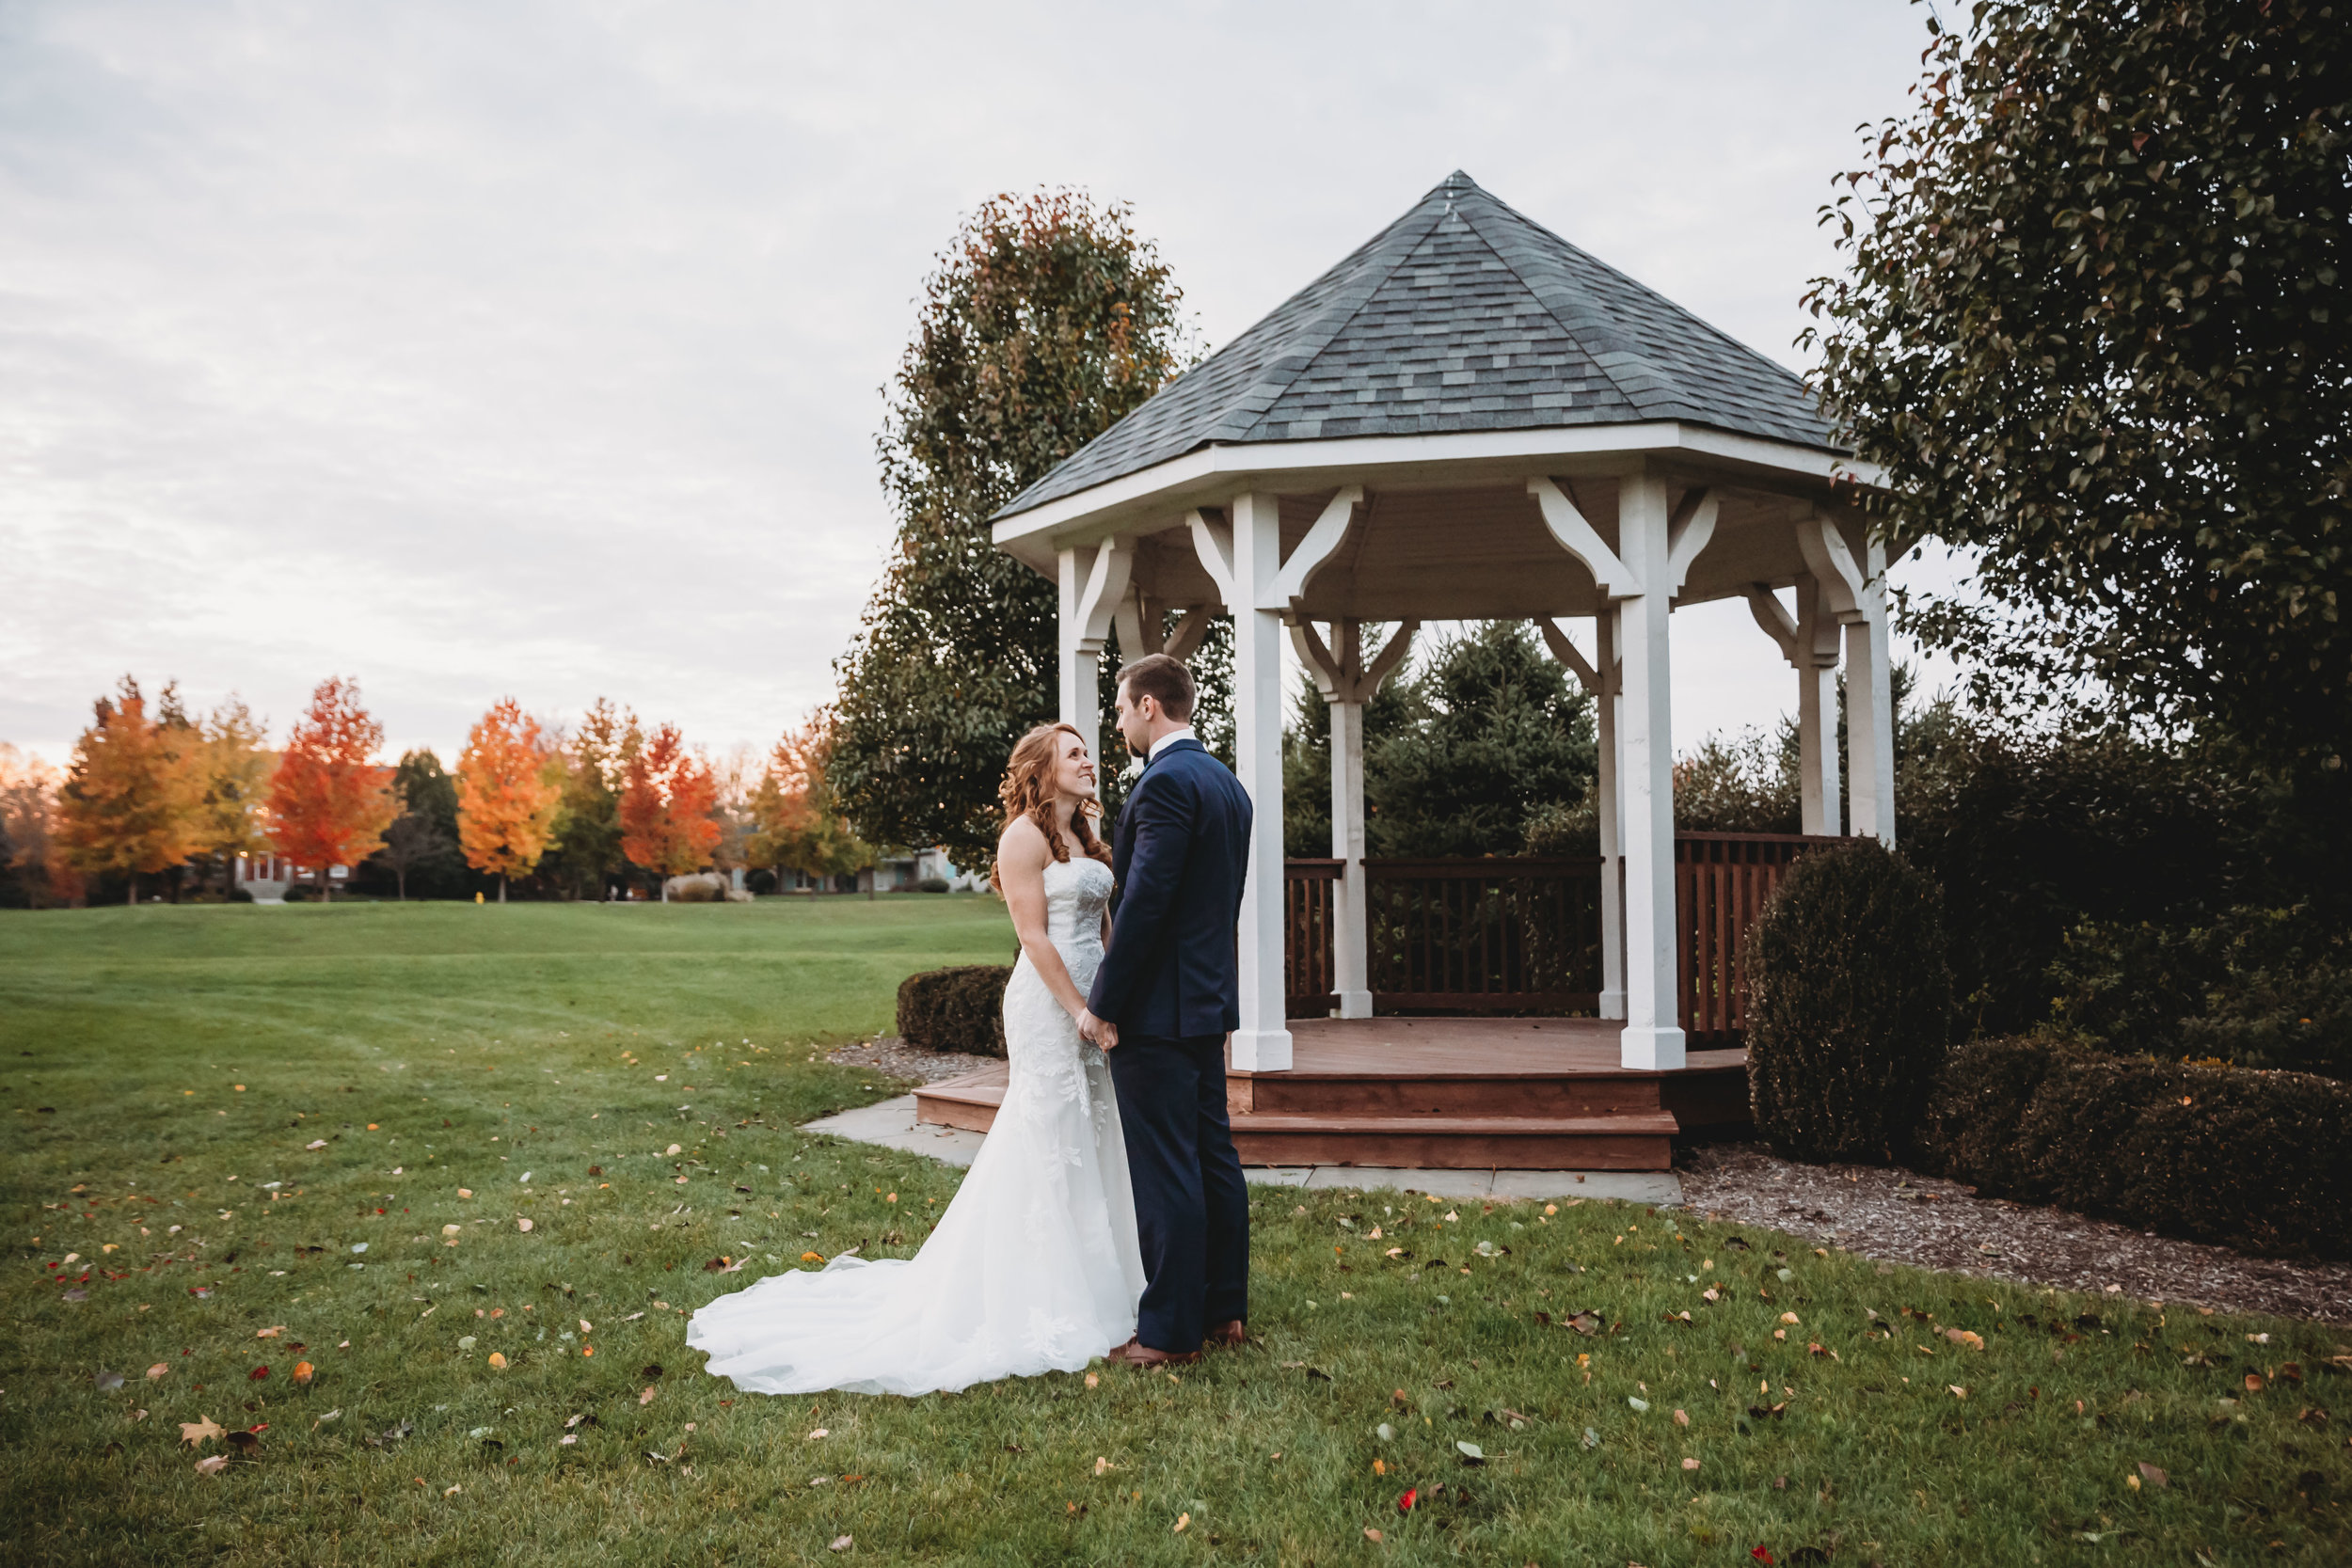 Ryan + Laura - Plum Creek | Carmel, IN | November 2018